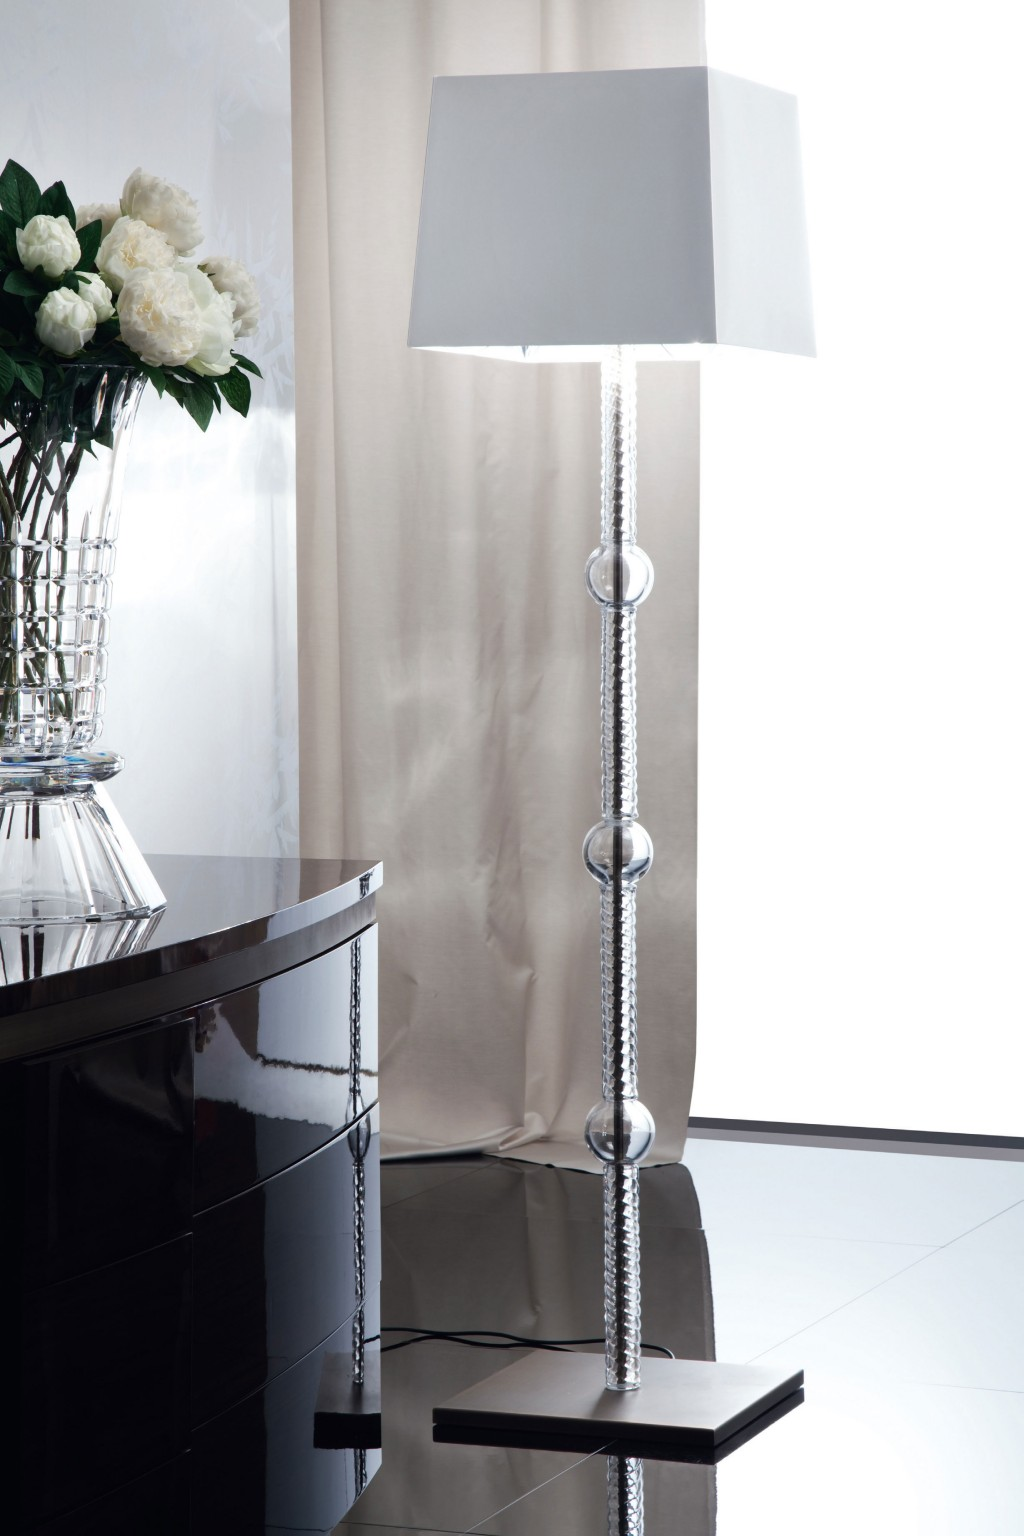 Giorgio Coliseum Mirtha Floor Lamp